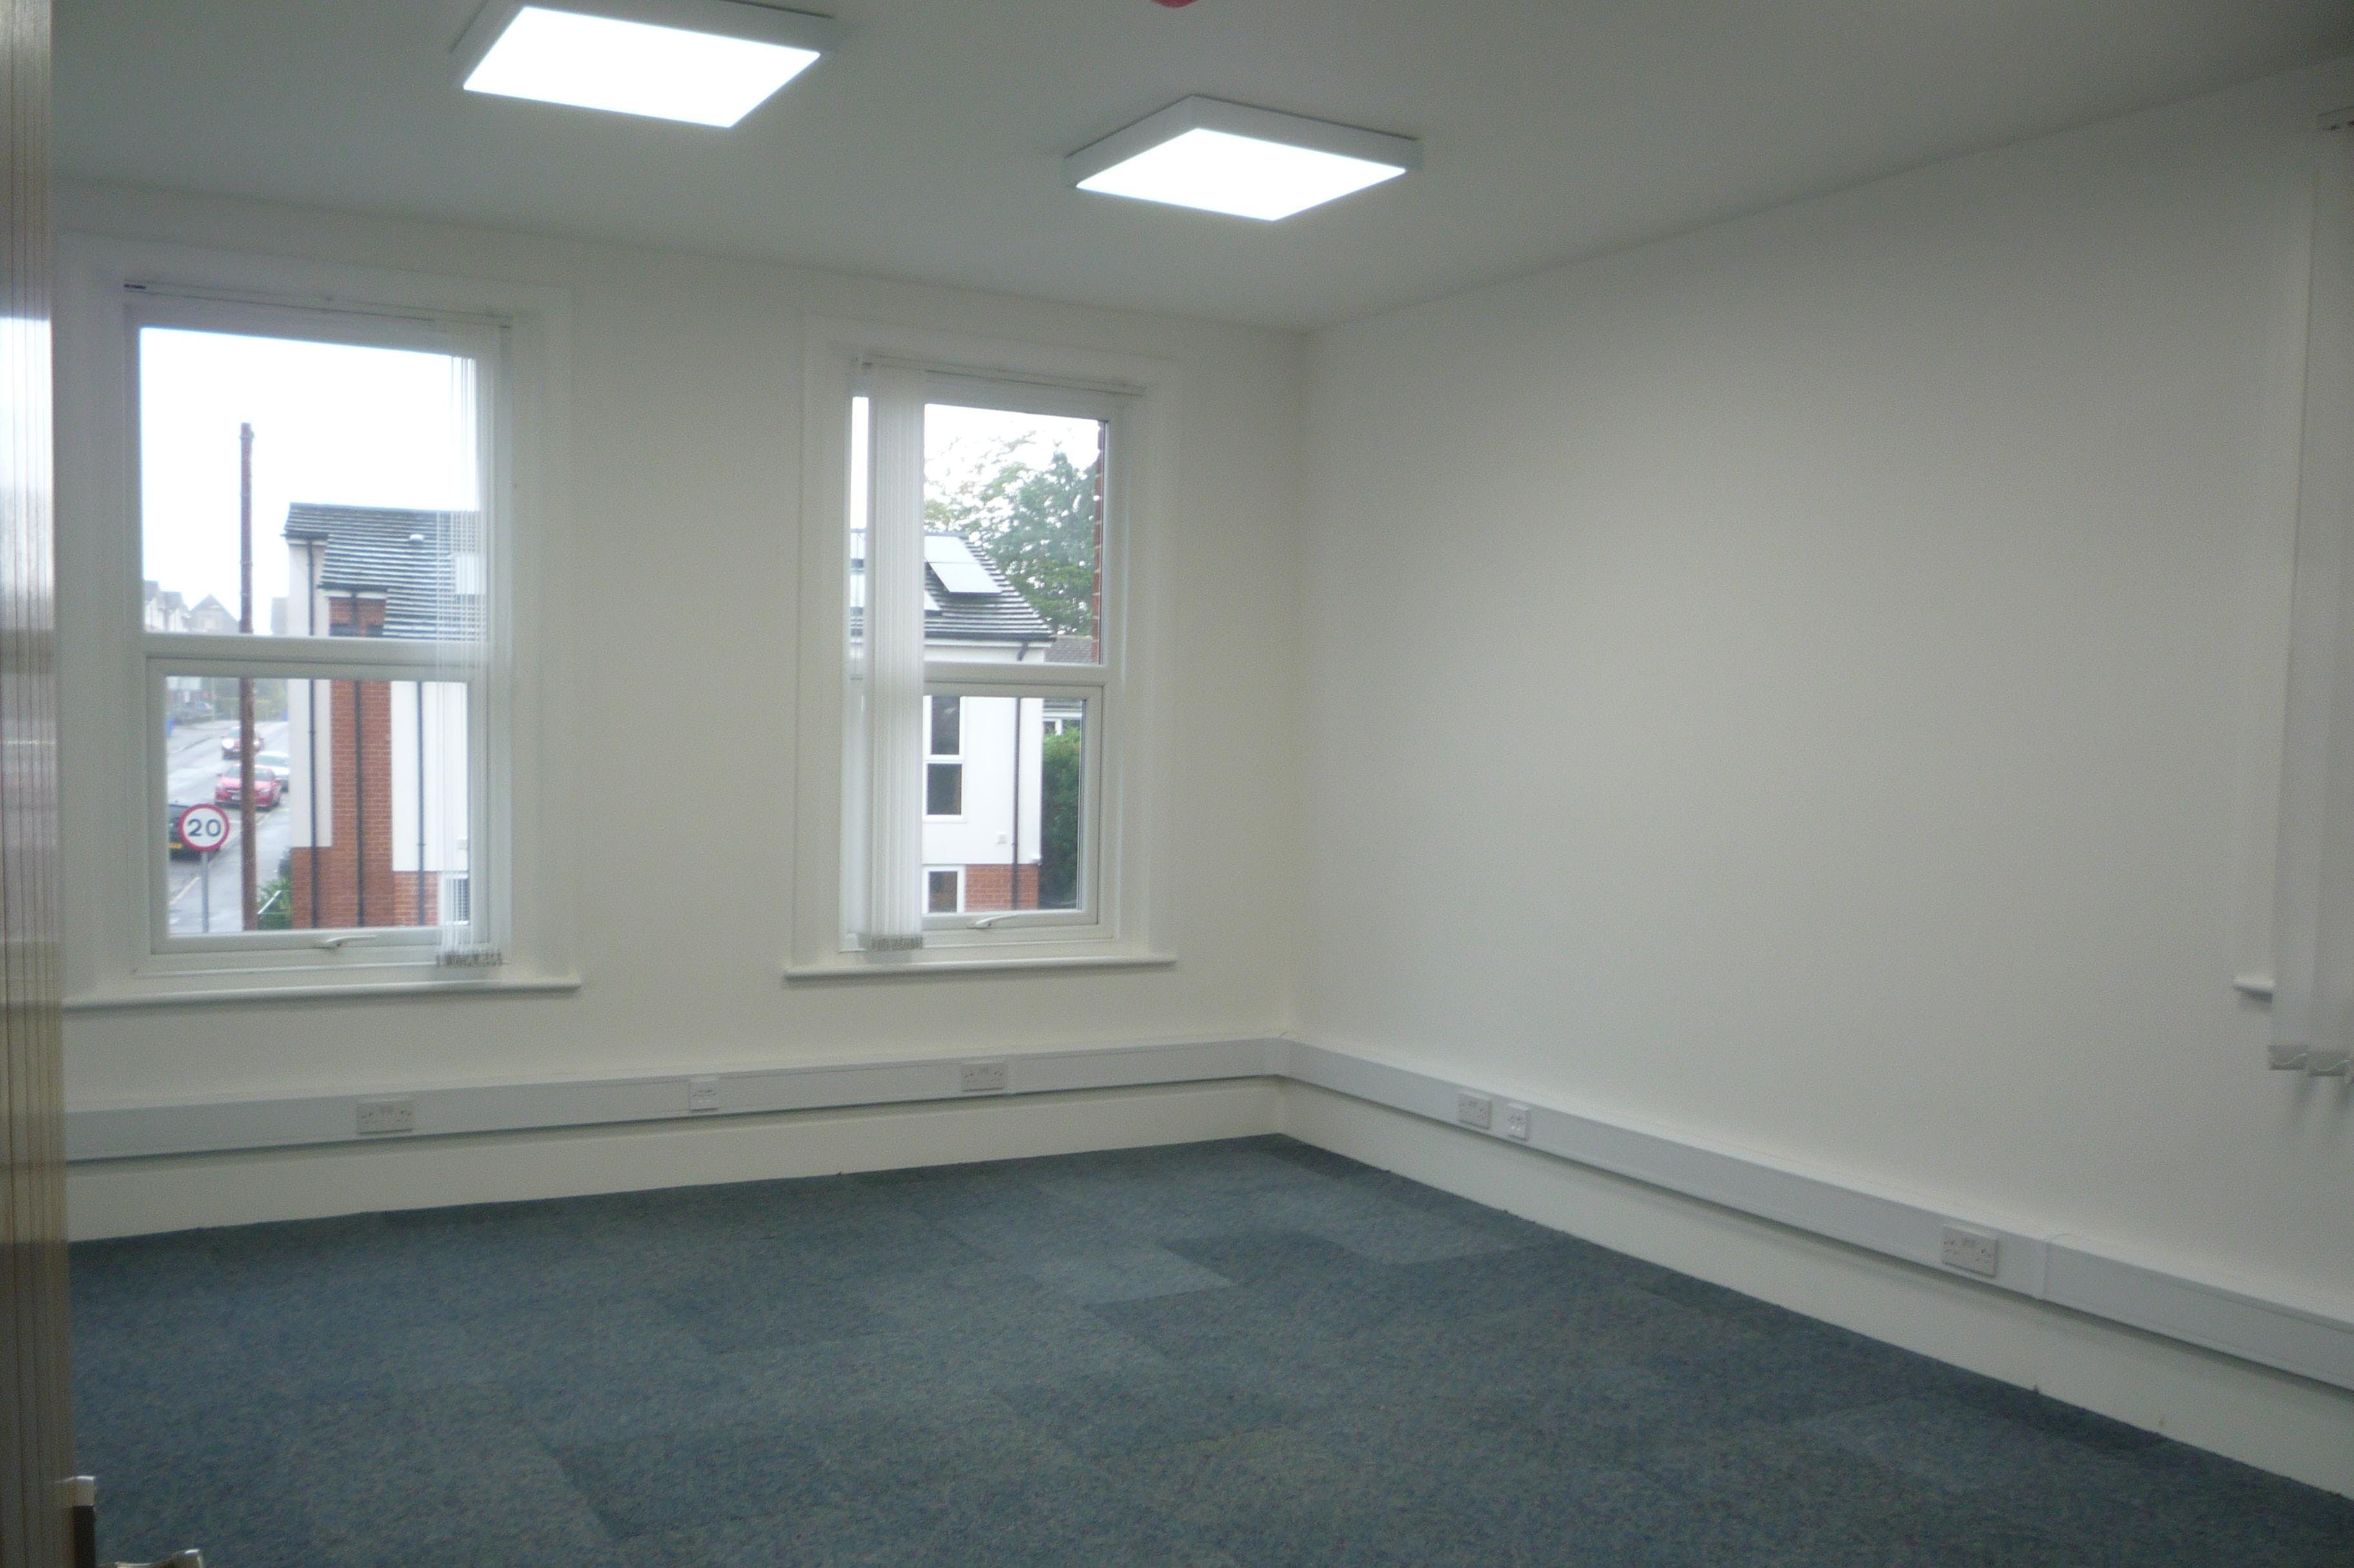 30 Reading Road South, Fleet, Offices To Let - P1040347.JPG